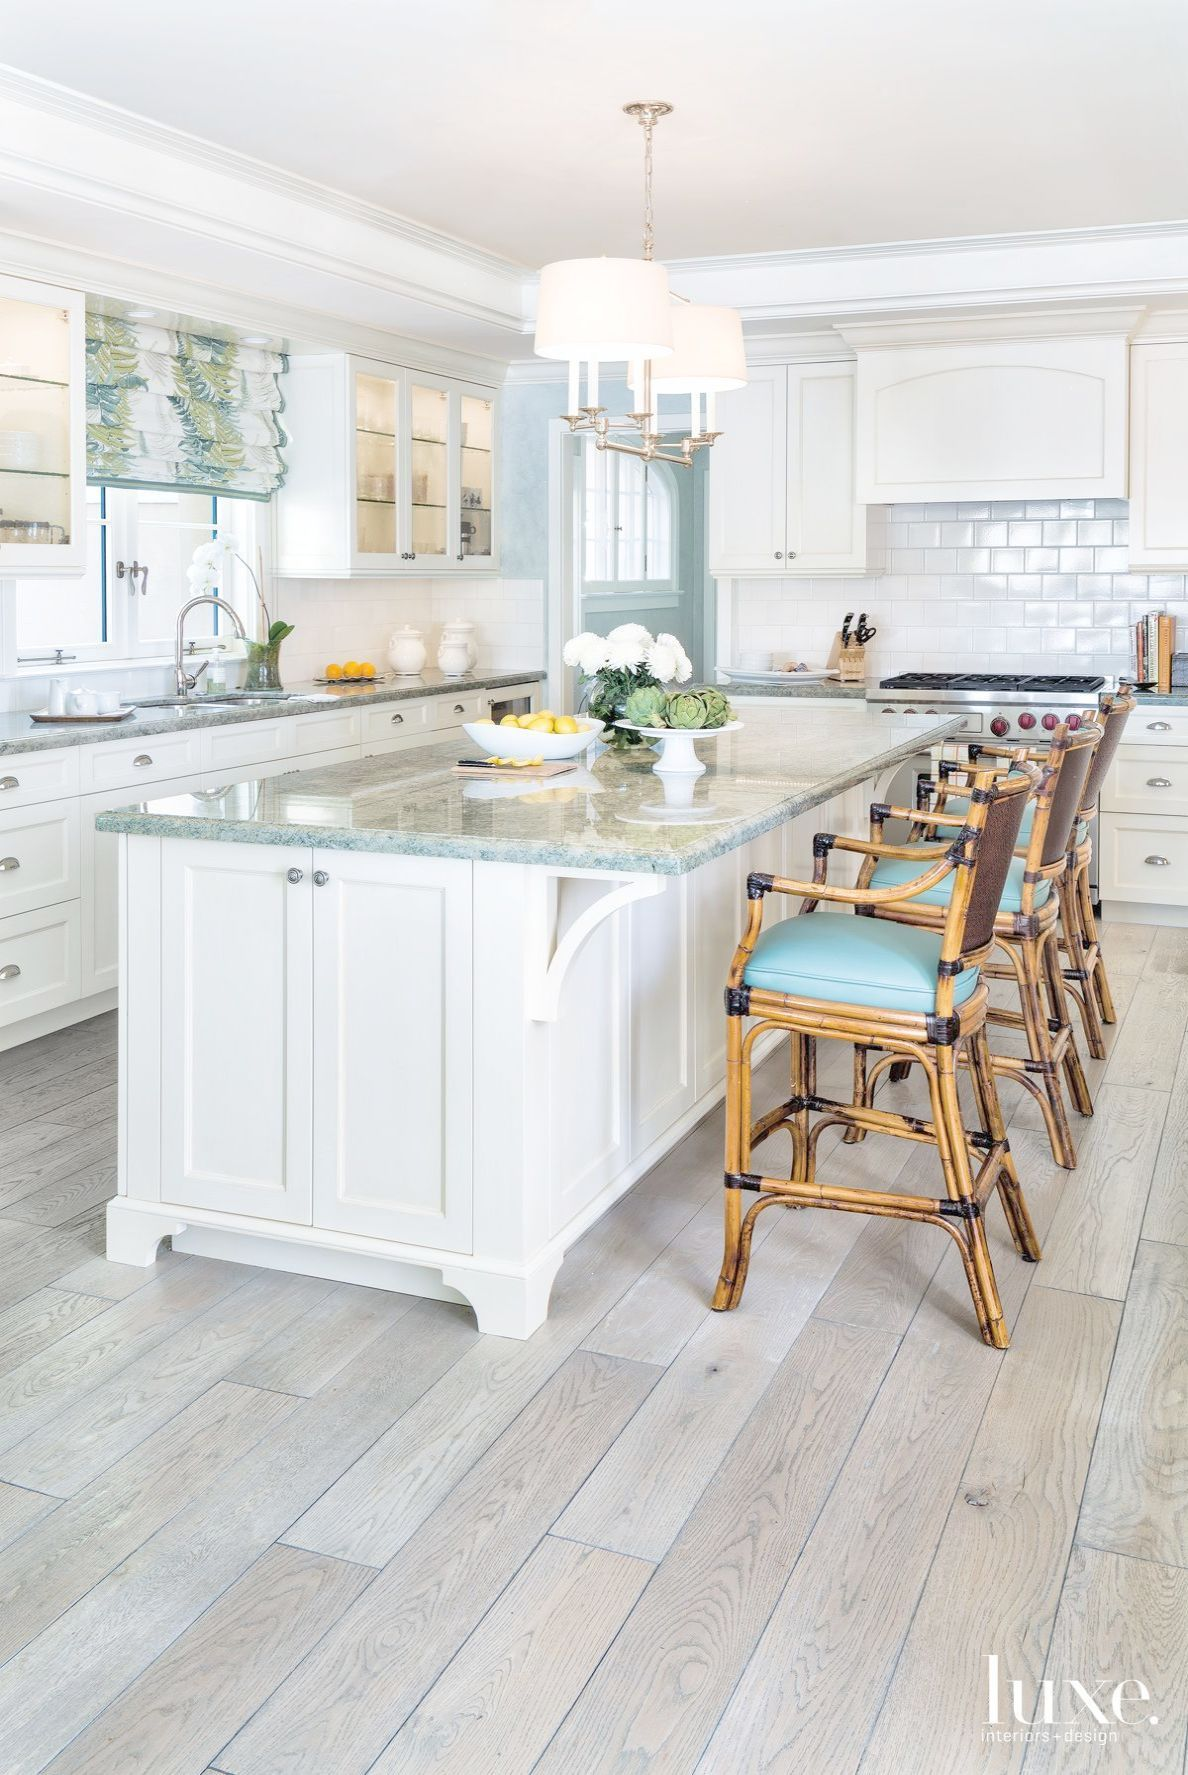 Coastal Kitchen - Allison Paladino Interior Design